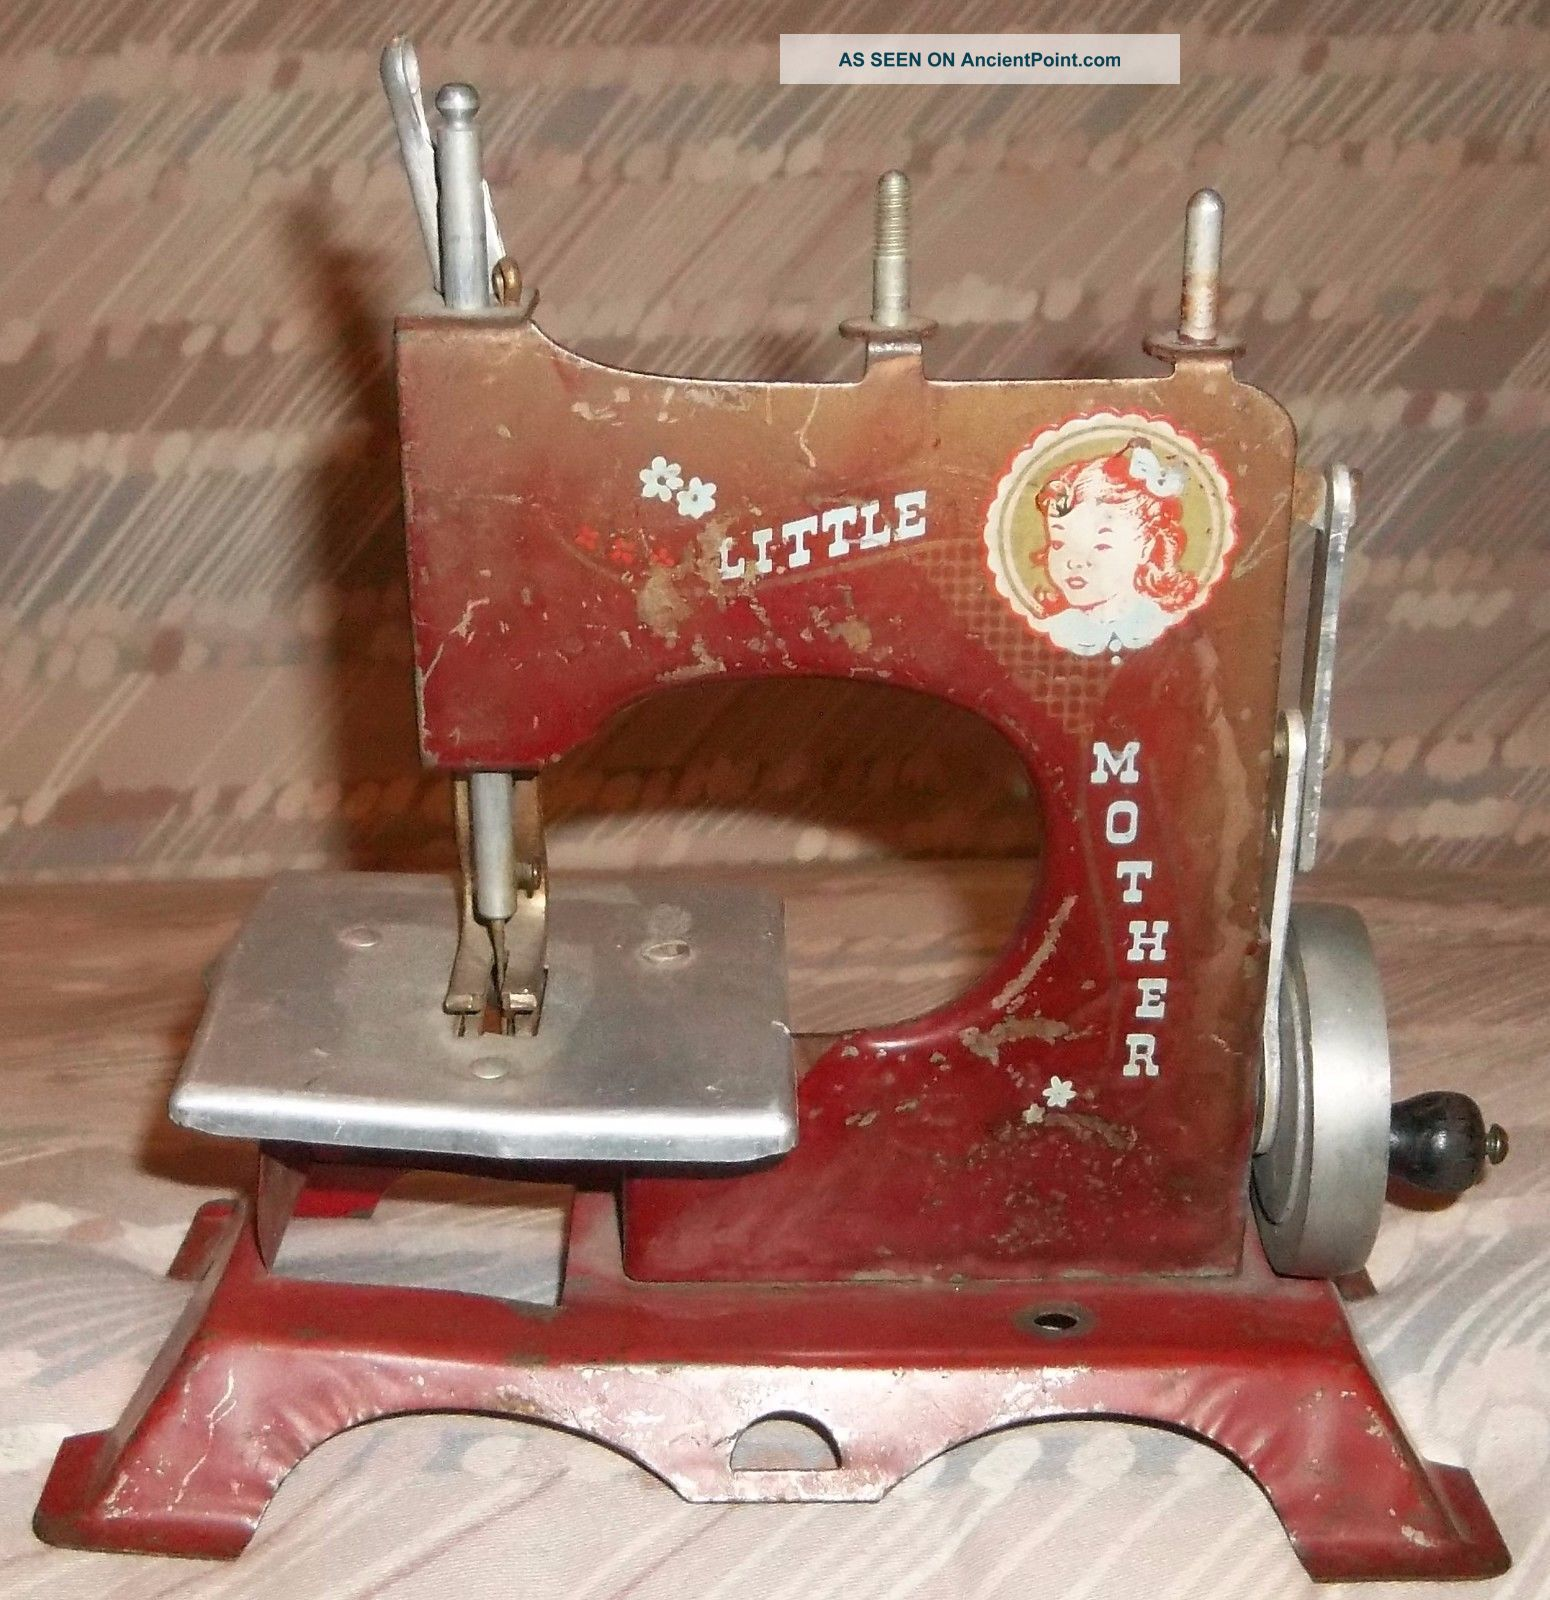 Vintage Antique Little Mother Artcraft Metal Childs Toy Sewing Machine Hand Turn Other Antique Sewing photo